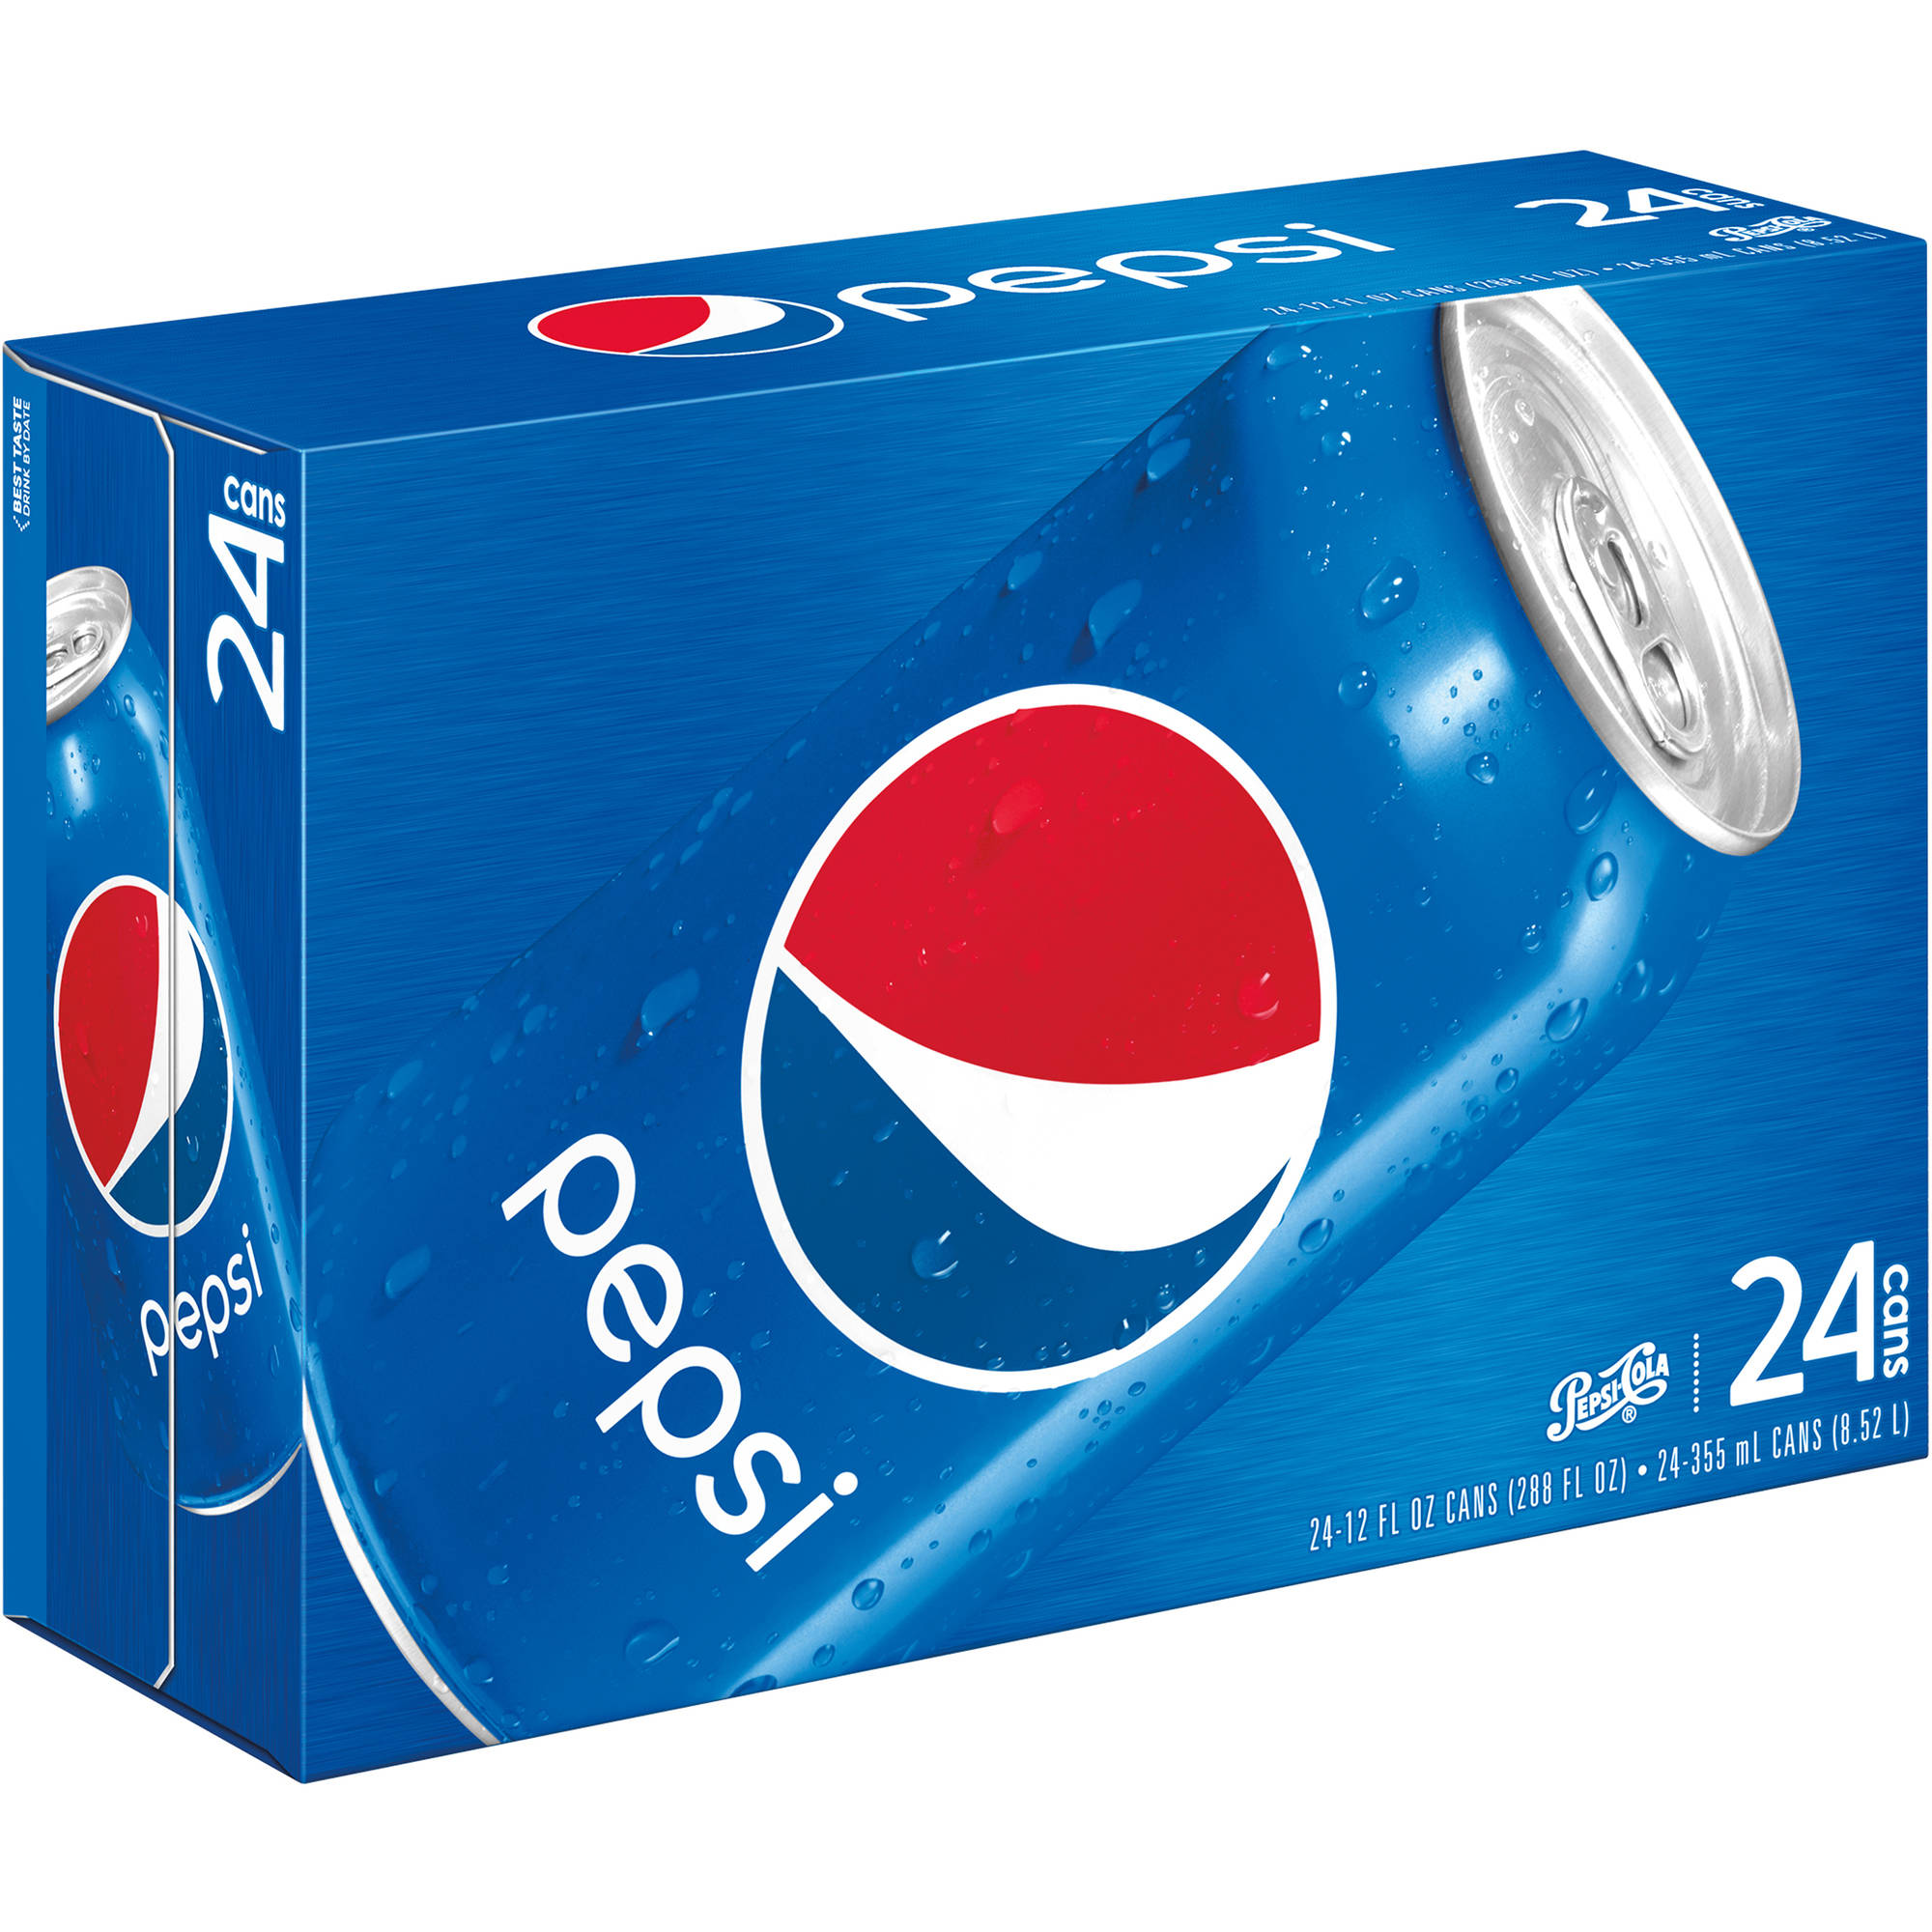 Pepsi Cola, 12 fl oz, 24 pack